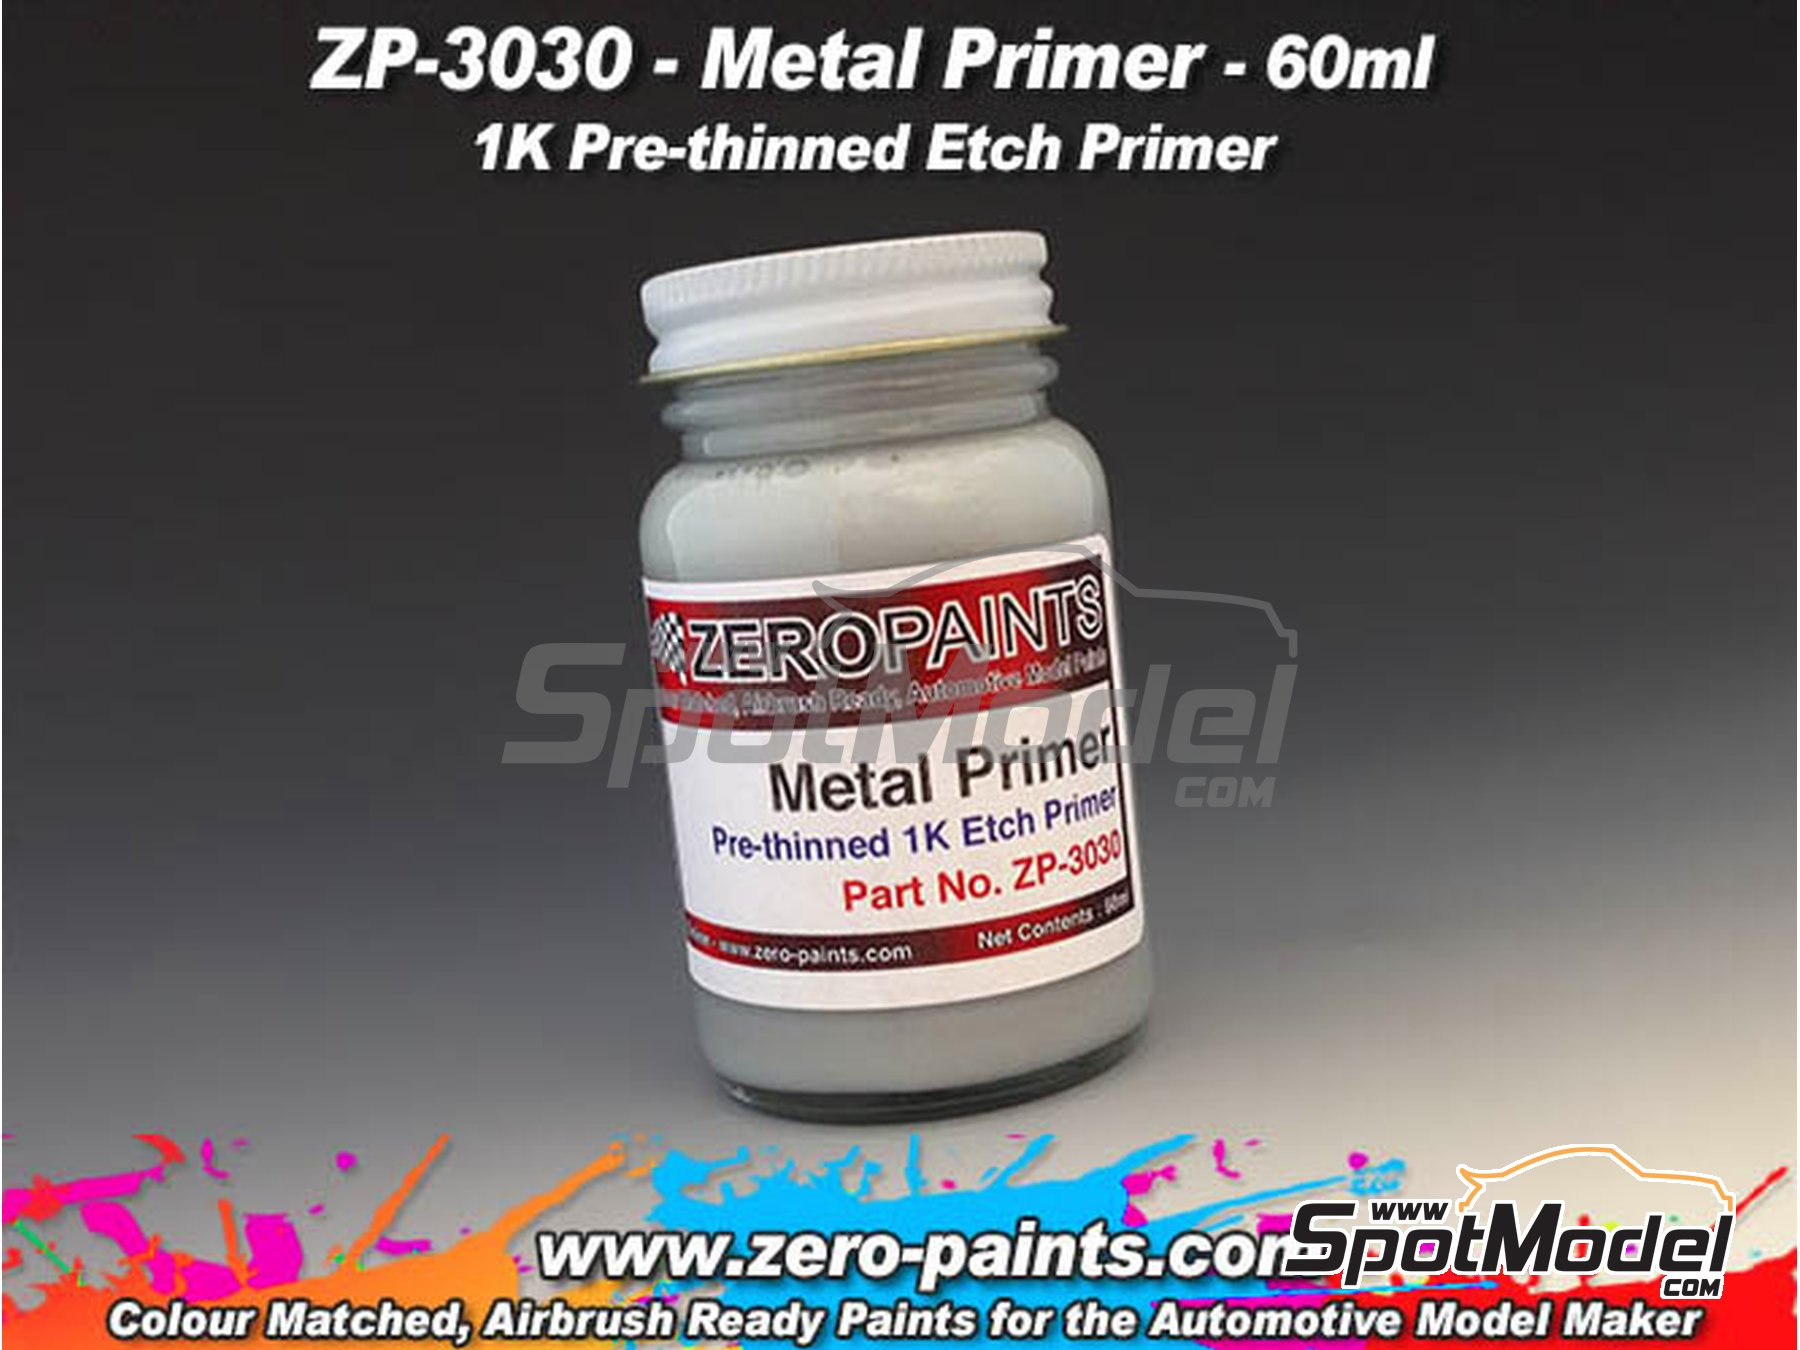 Image 1: Metal primer pre-thinned - 60ml | Primer manufactured by Zero Paints (ref. ZP-3030)